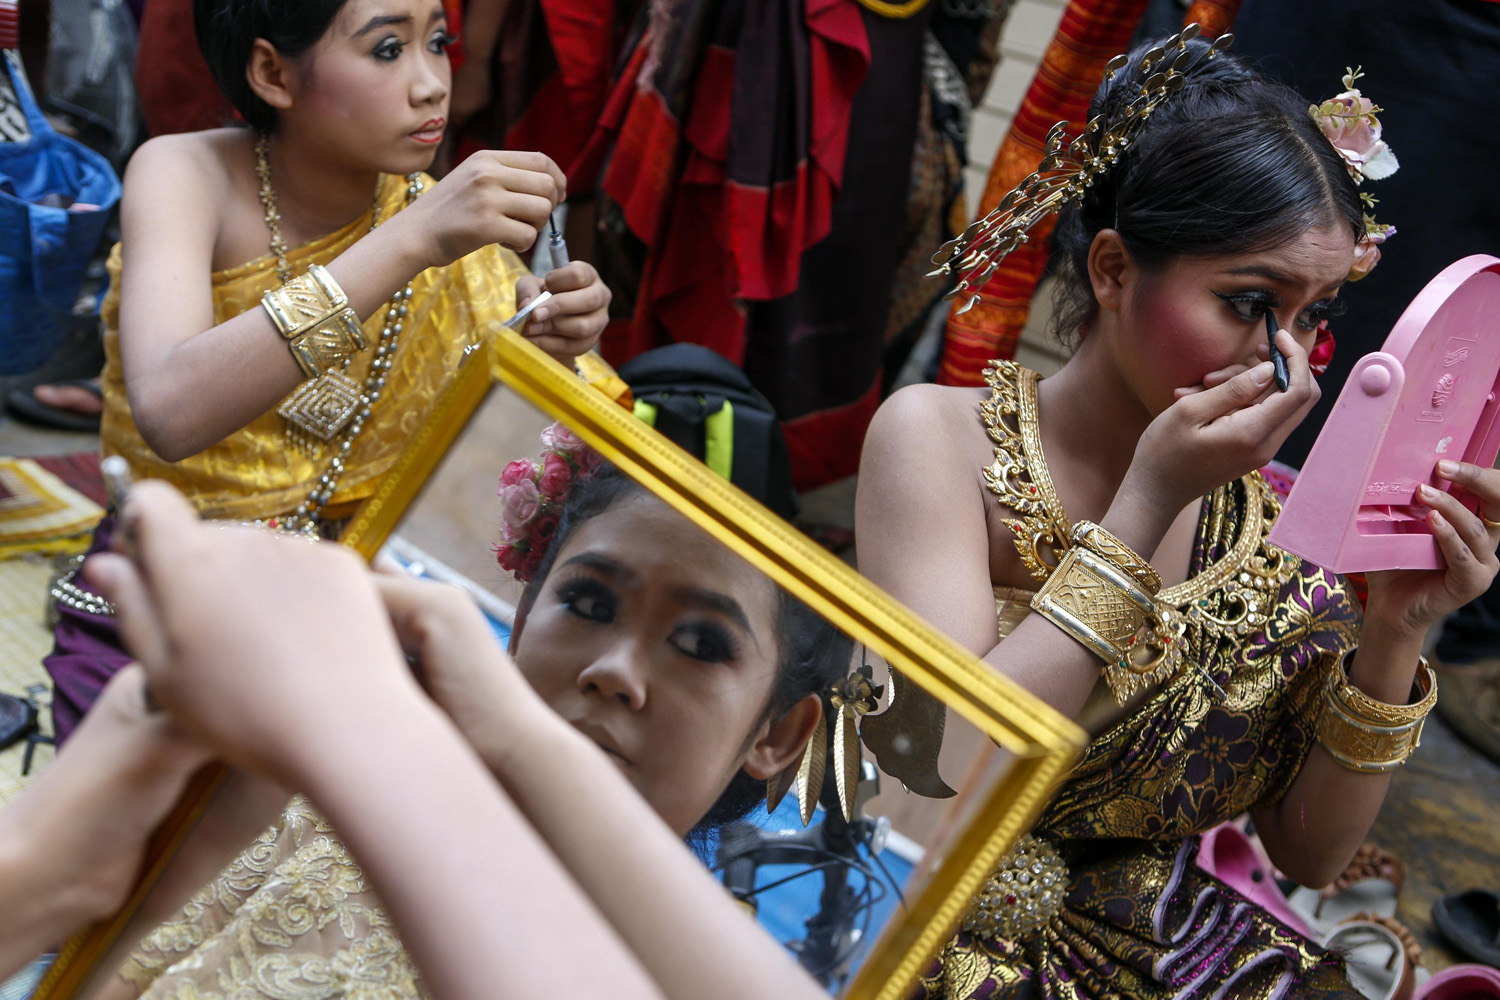 June 4, 2014. Dancers get their make up done backstage before their show at the Victory Monument during a military event in Bangkok.